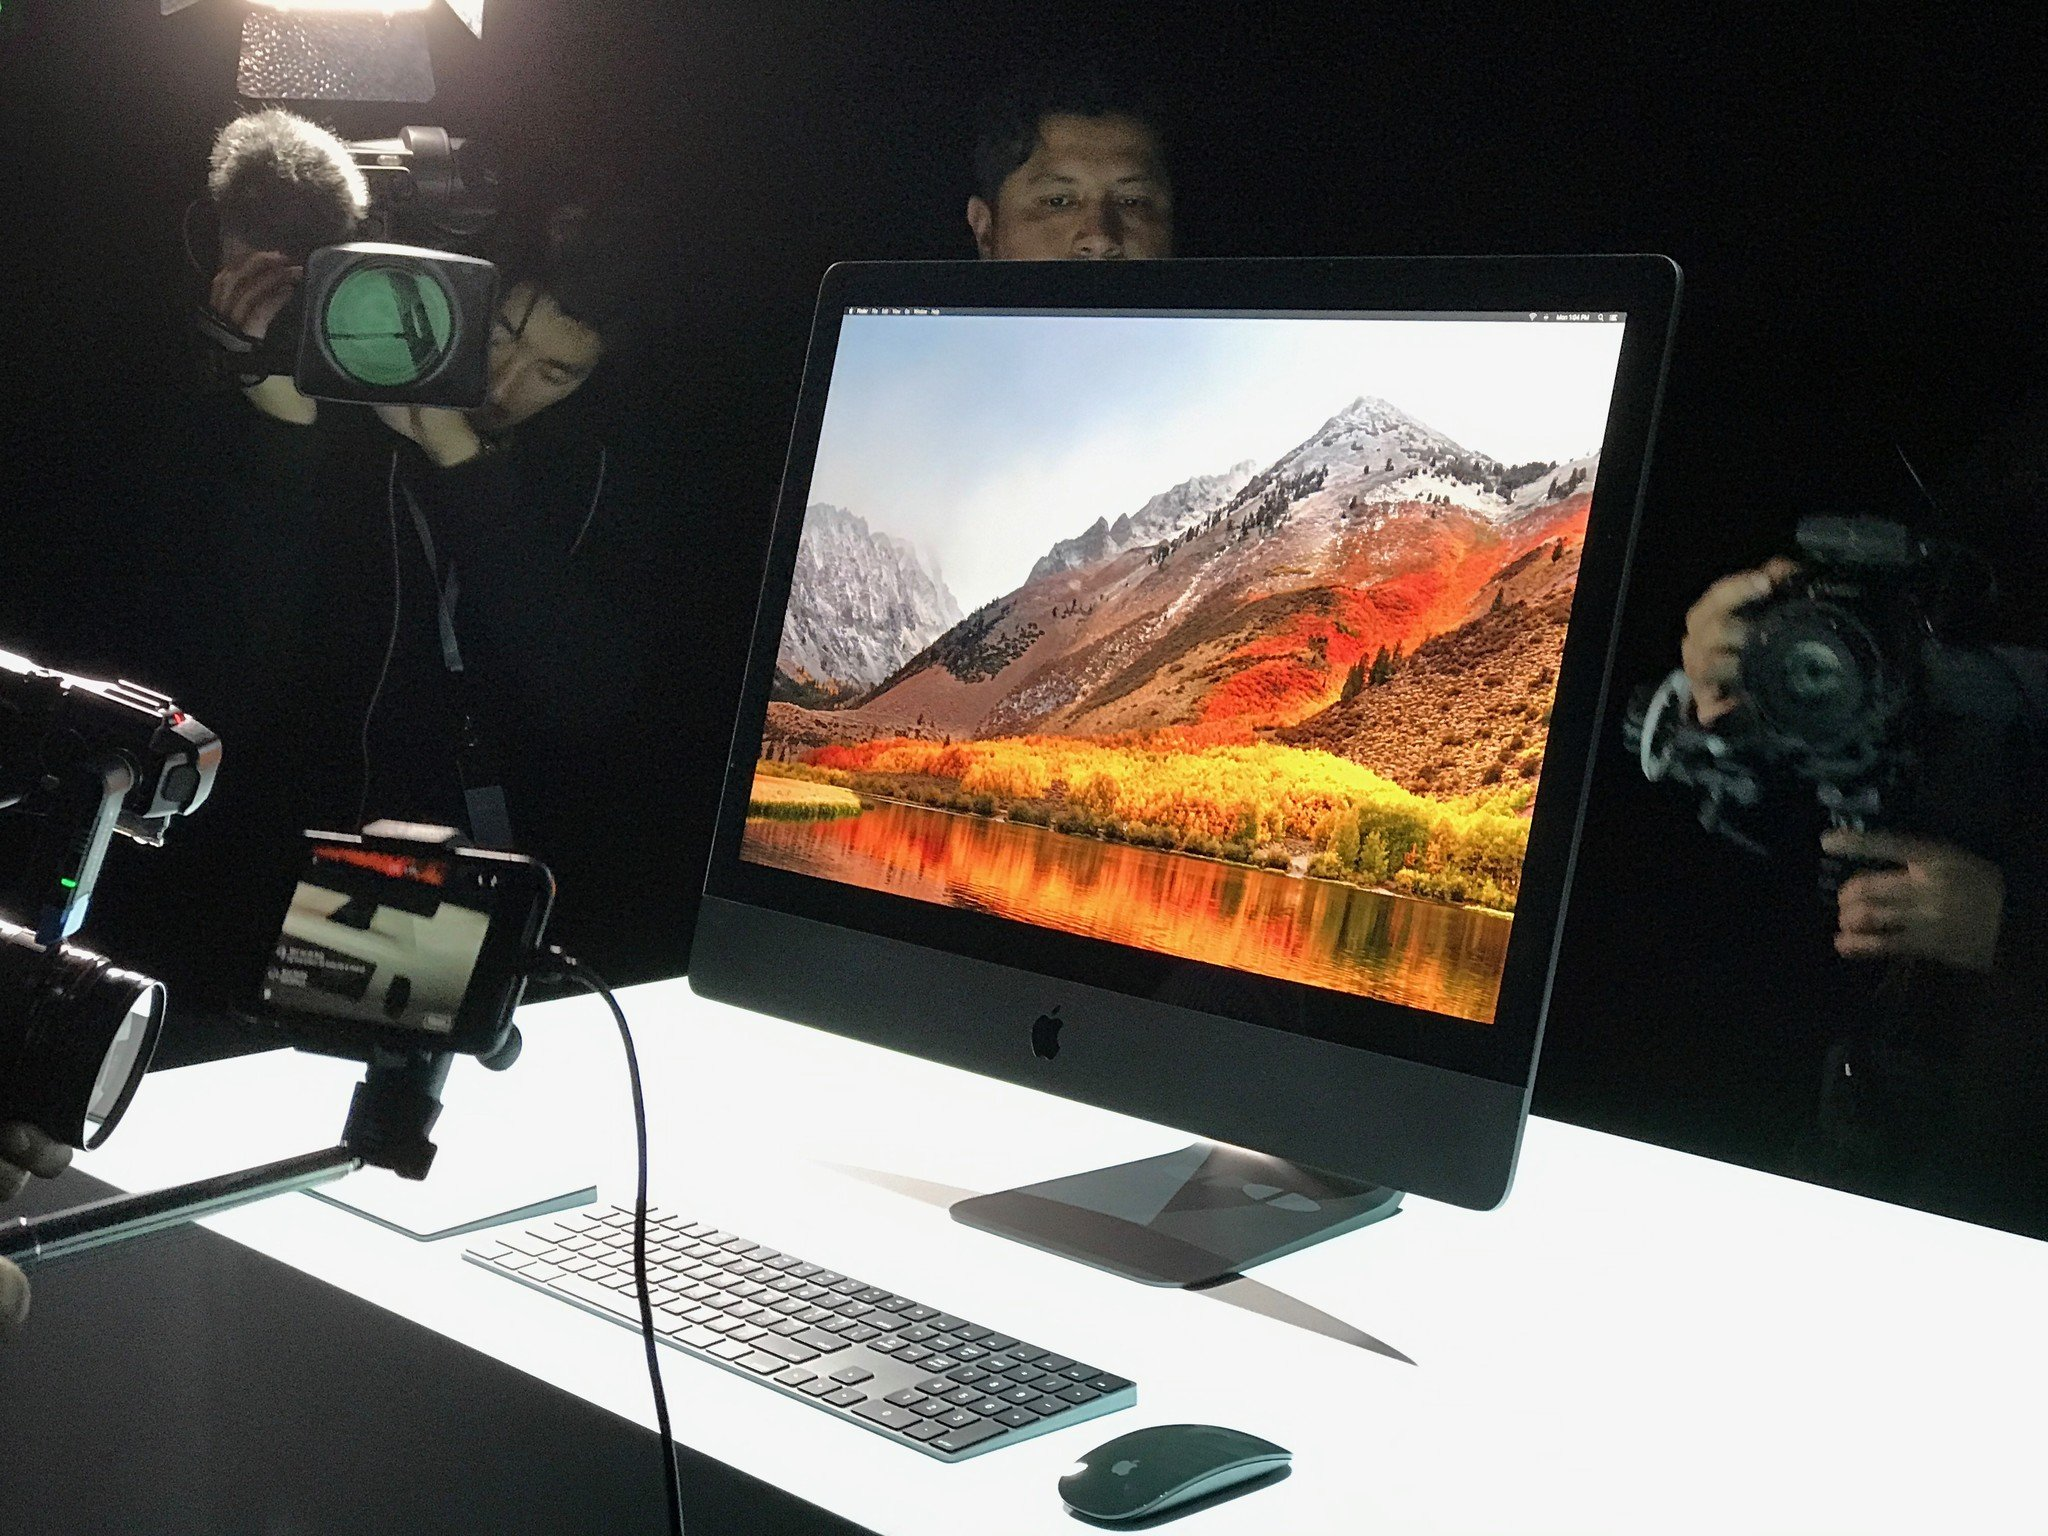 Cash Wallpaper Hd Should You Upgrade To The New Imac Pro Imore